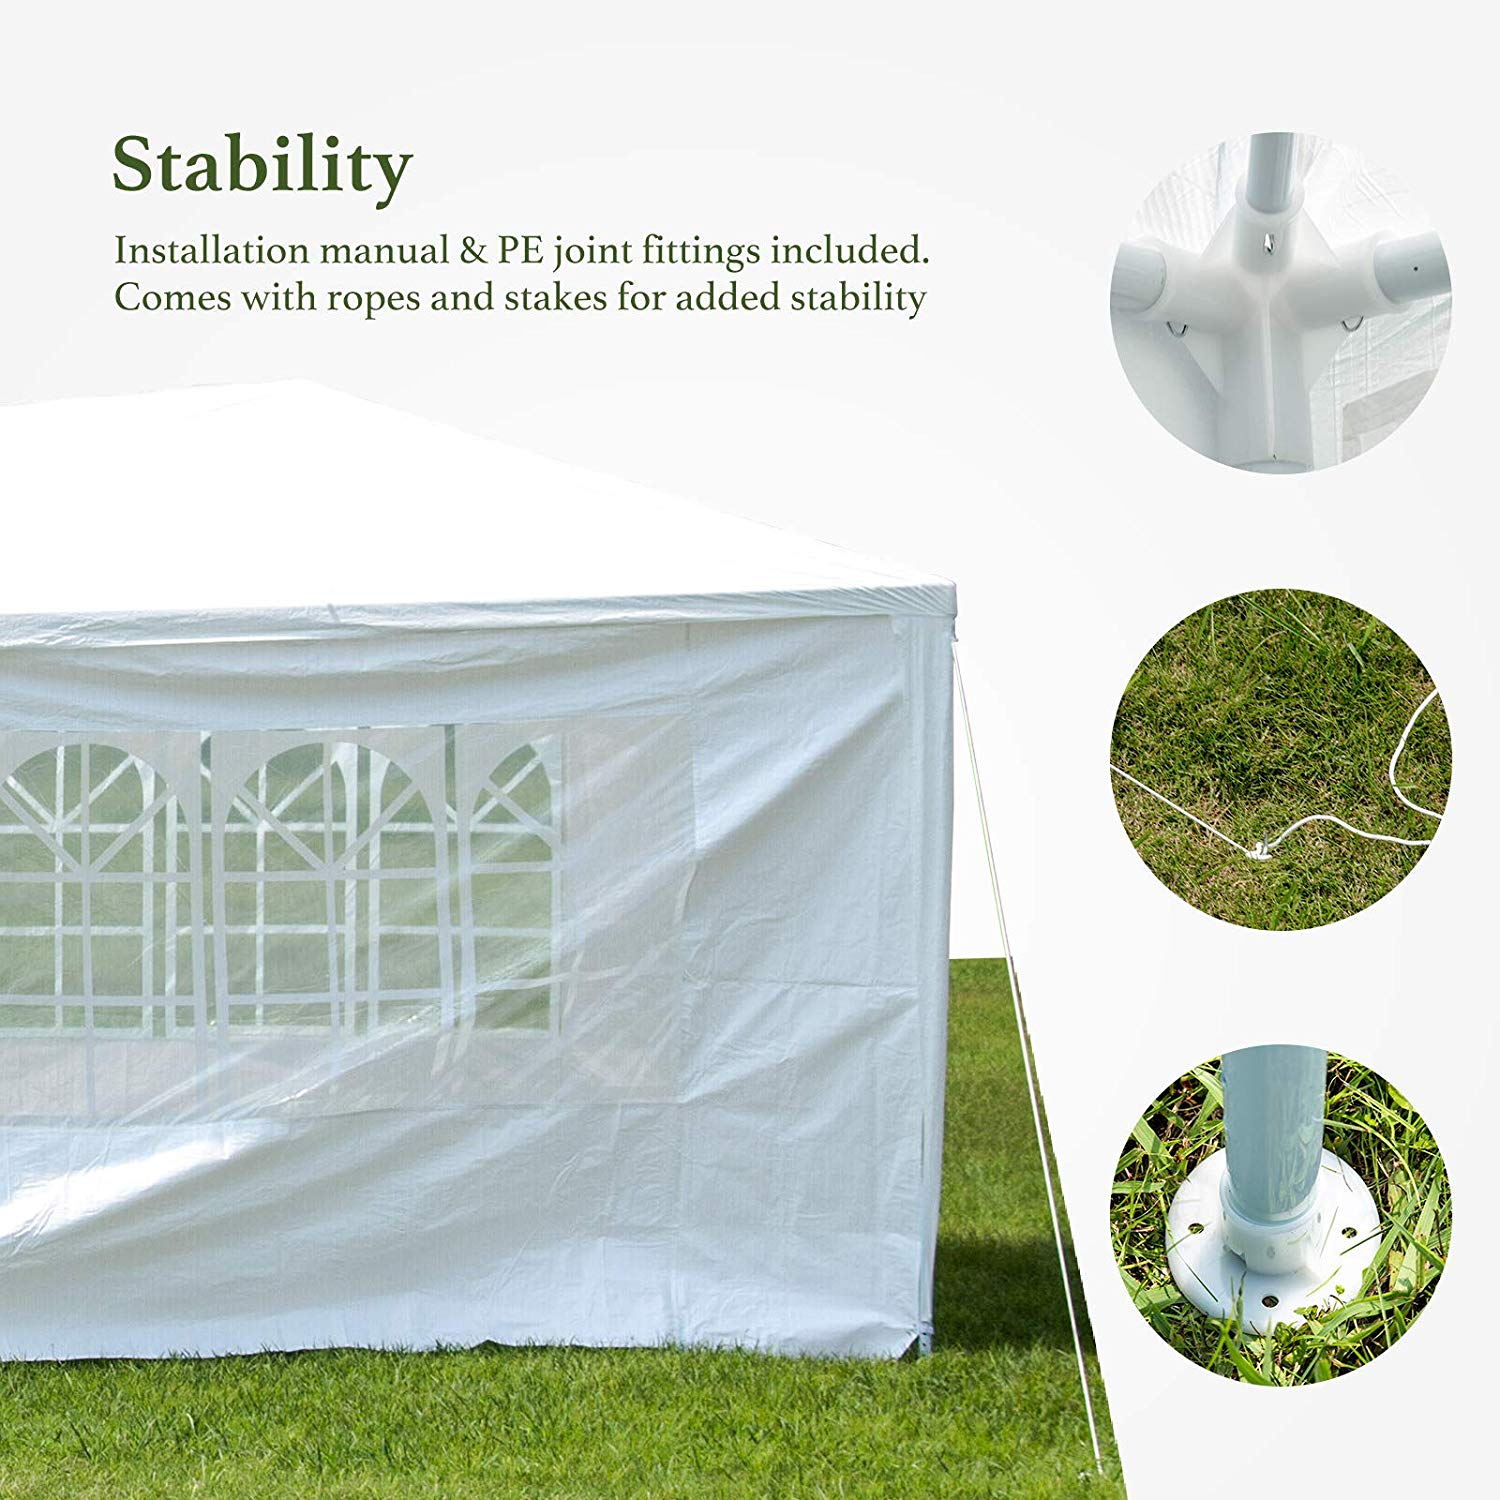 Mcombo 10'x30' Outdoor Canopy Tent Wedding Party Heavy Duty Instant Gazebo  with 5 Removable Sidewalls White